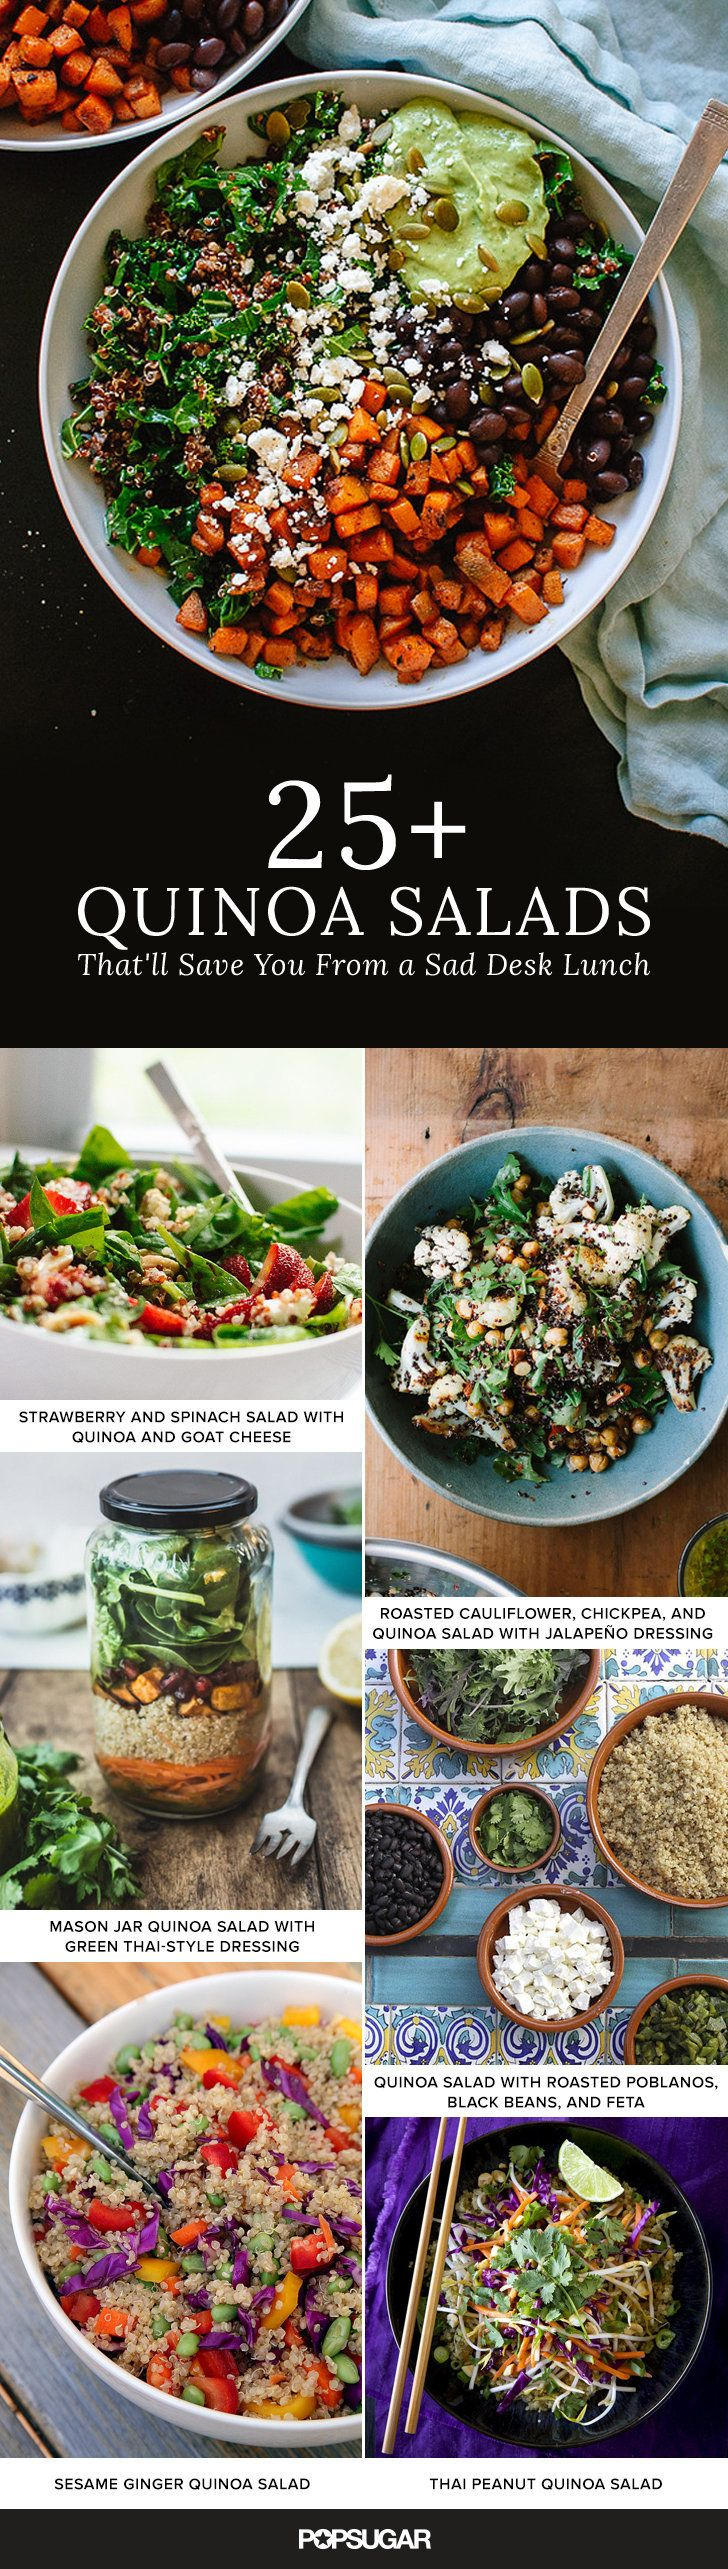 Avoid midday meal disappointment by preparing a sturdy quinoa salad — many taste nearly as good on the second, or even third, day — to bring with you to work, to school, or on a picnic. Here are a few tasty options.